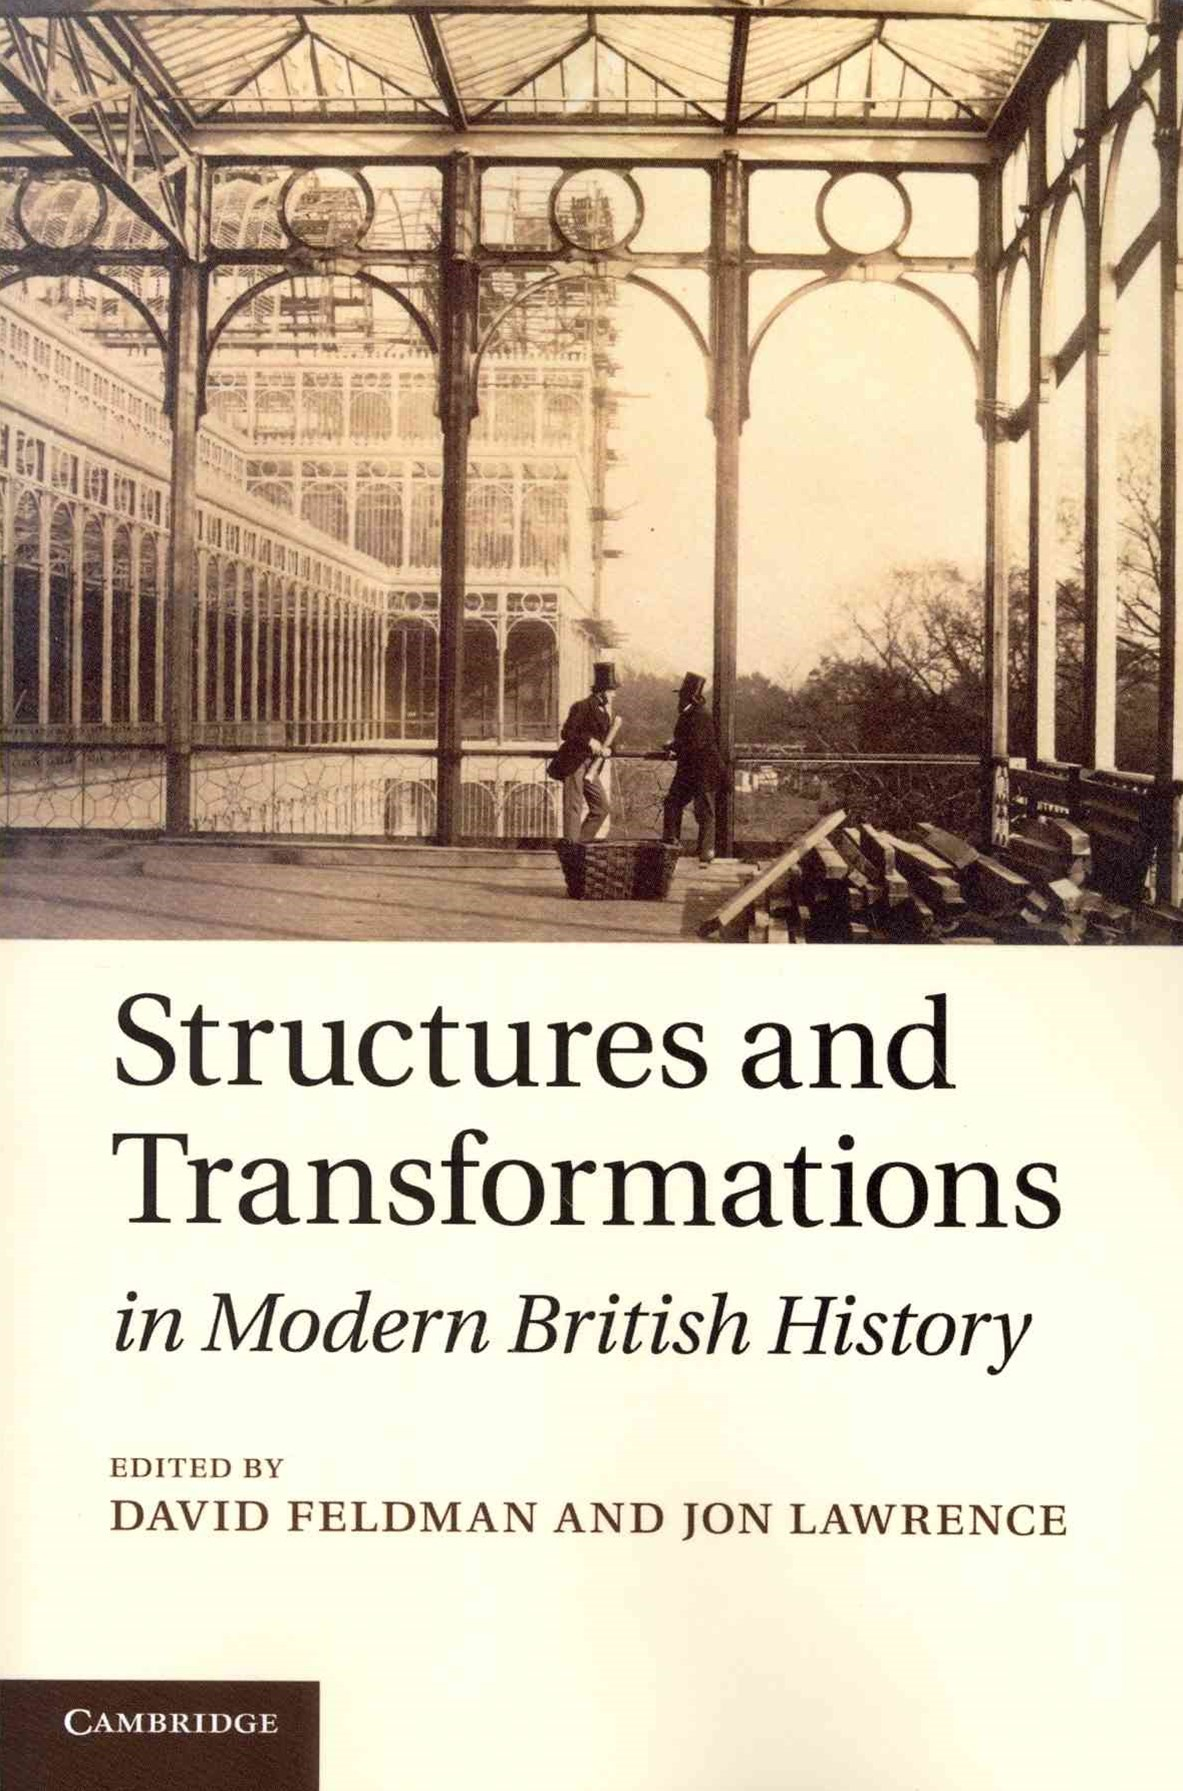 Structures and Transformations in Modern British History